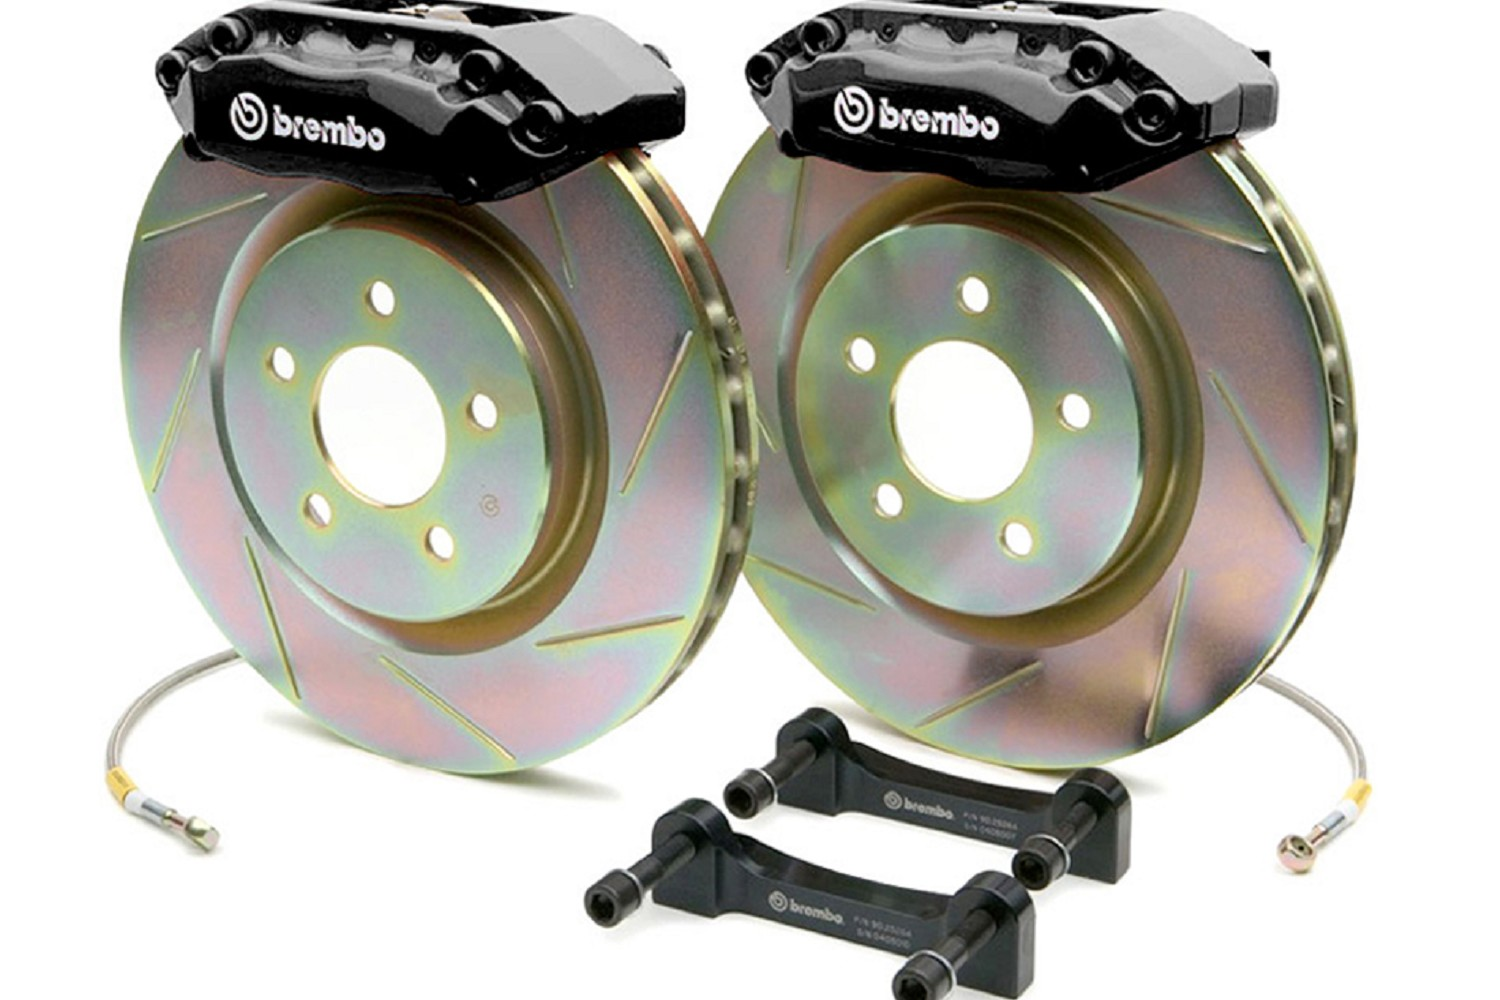 Brembo Brake Kit >> Brembo Gt R Series Focus Front Brake Kit 13 18 St